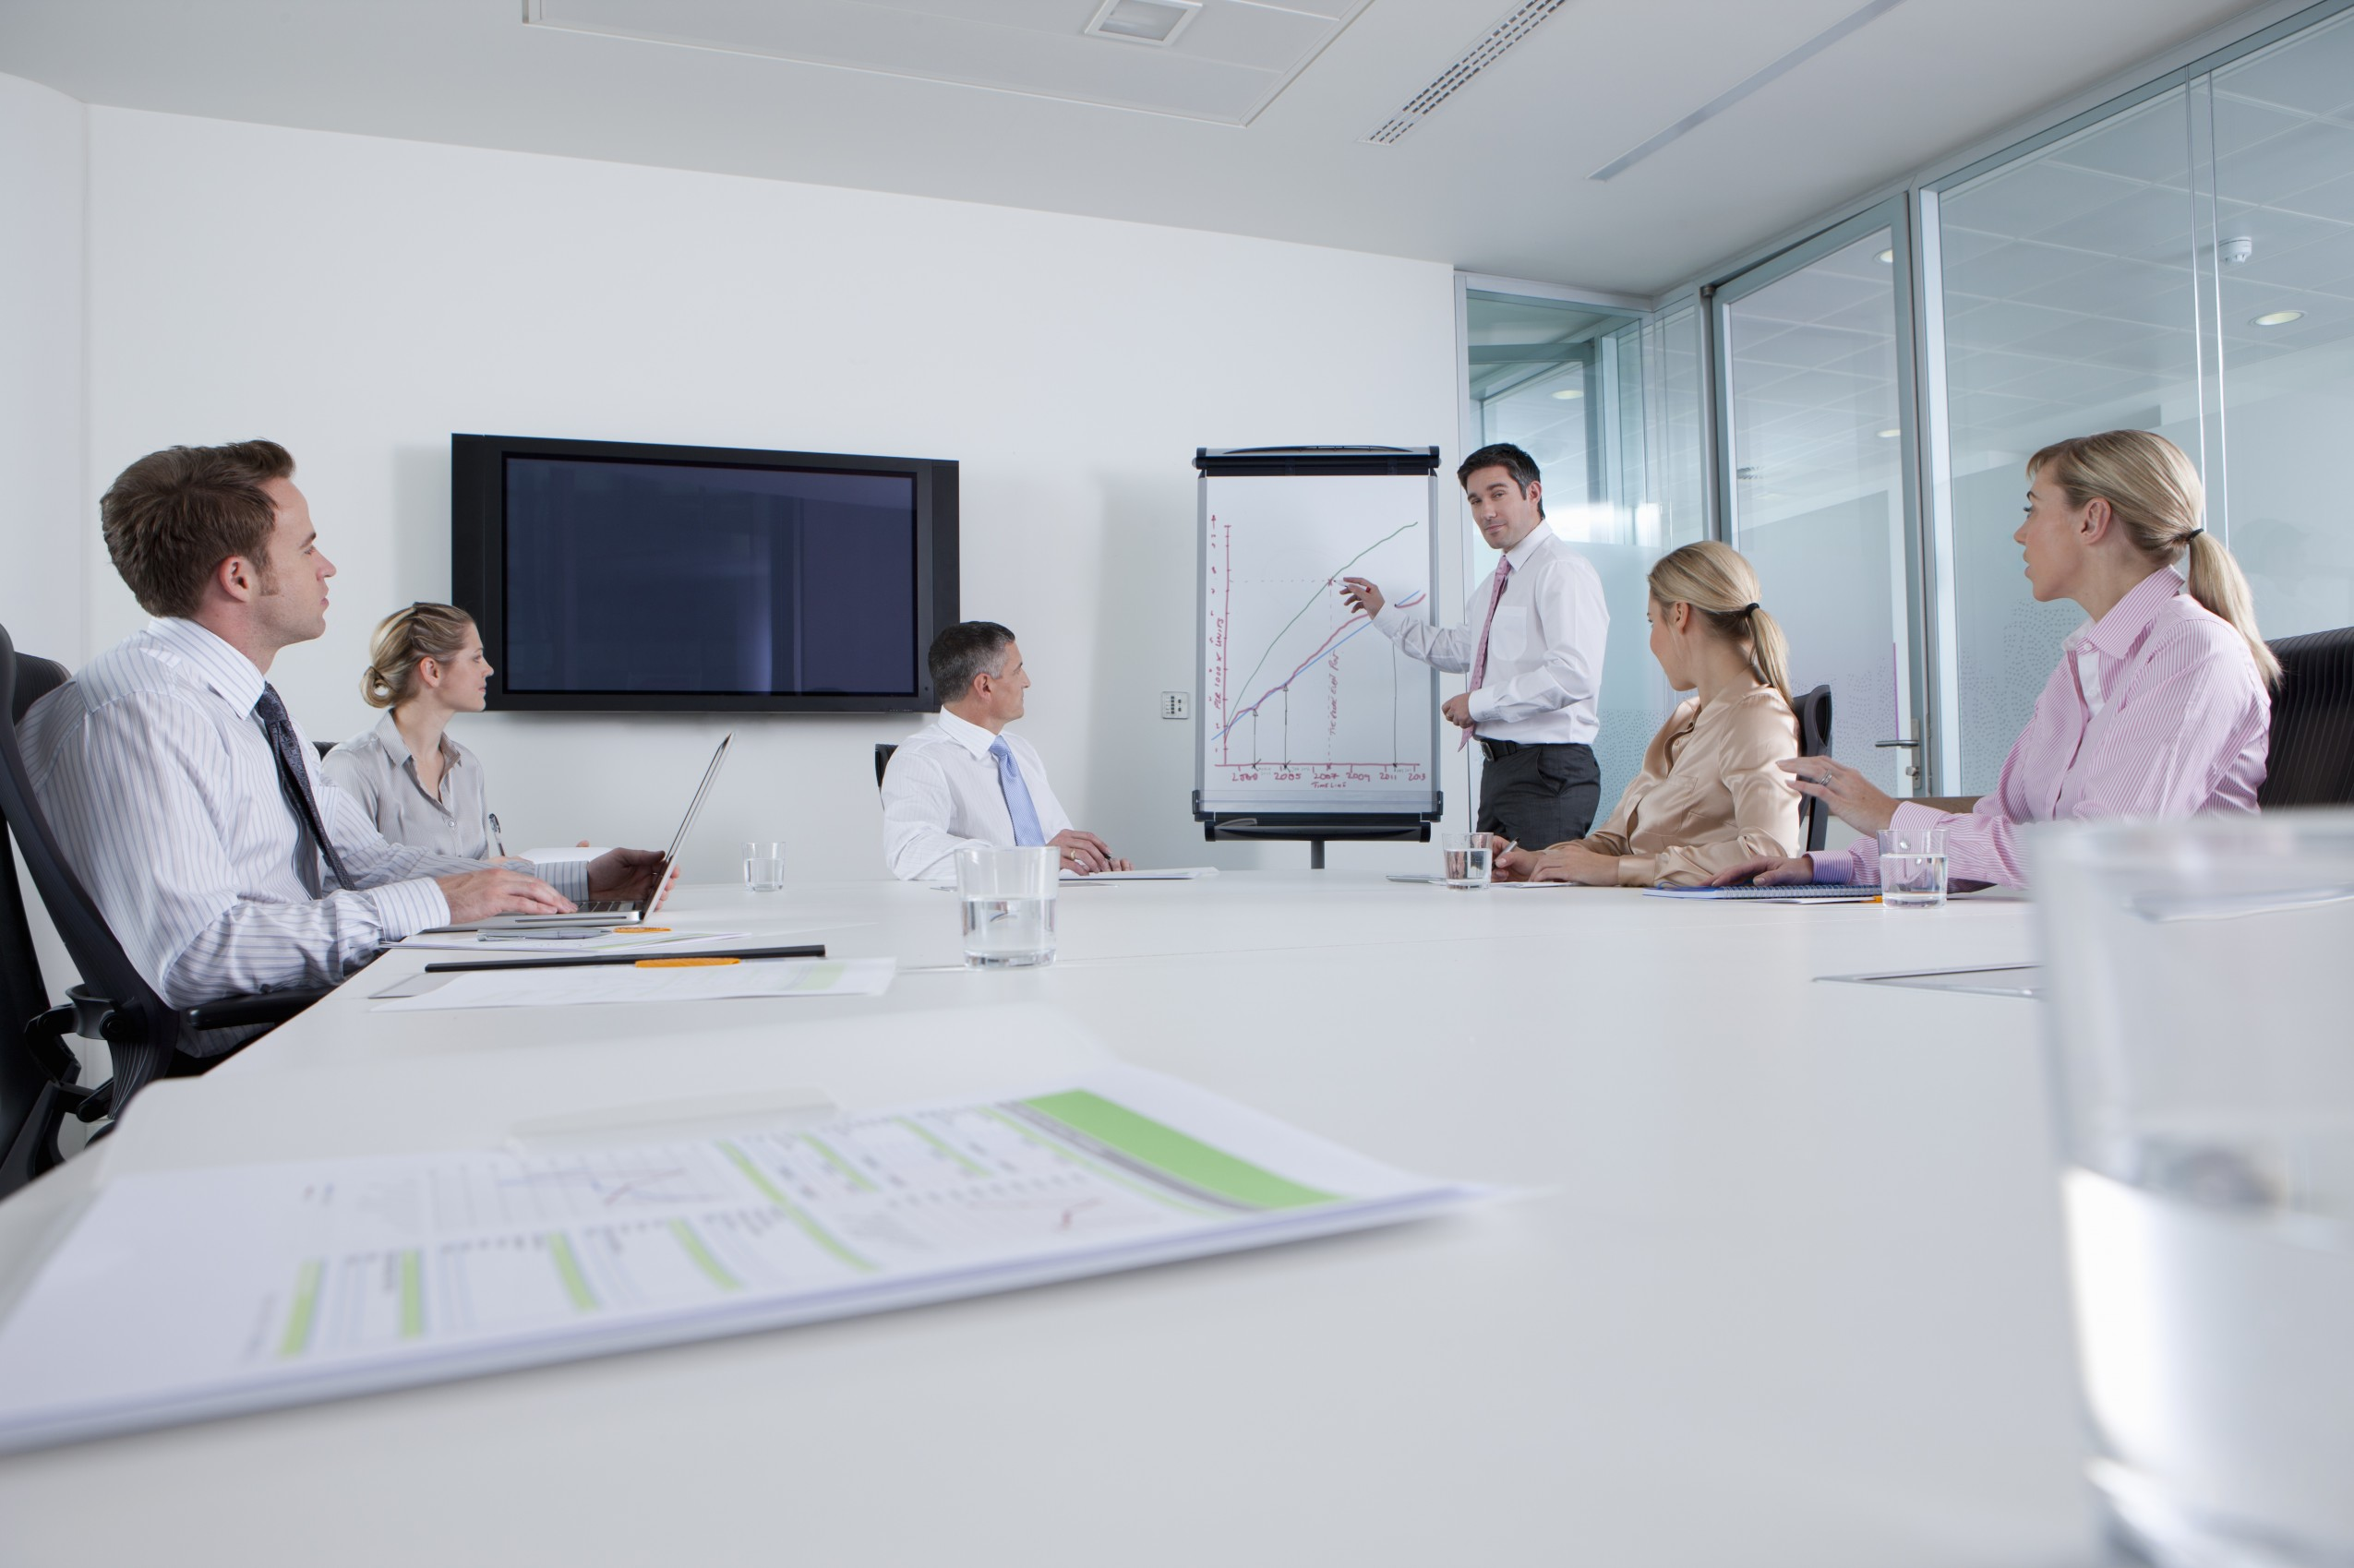 Businessman standing at chart and leading meeting in conference room